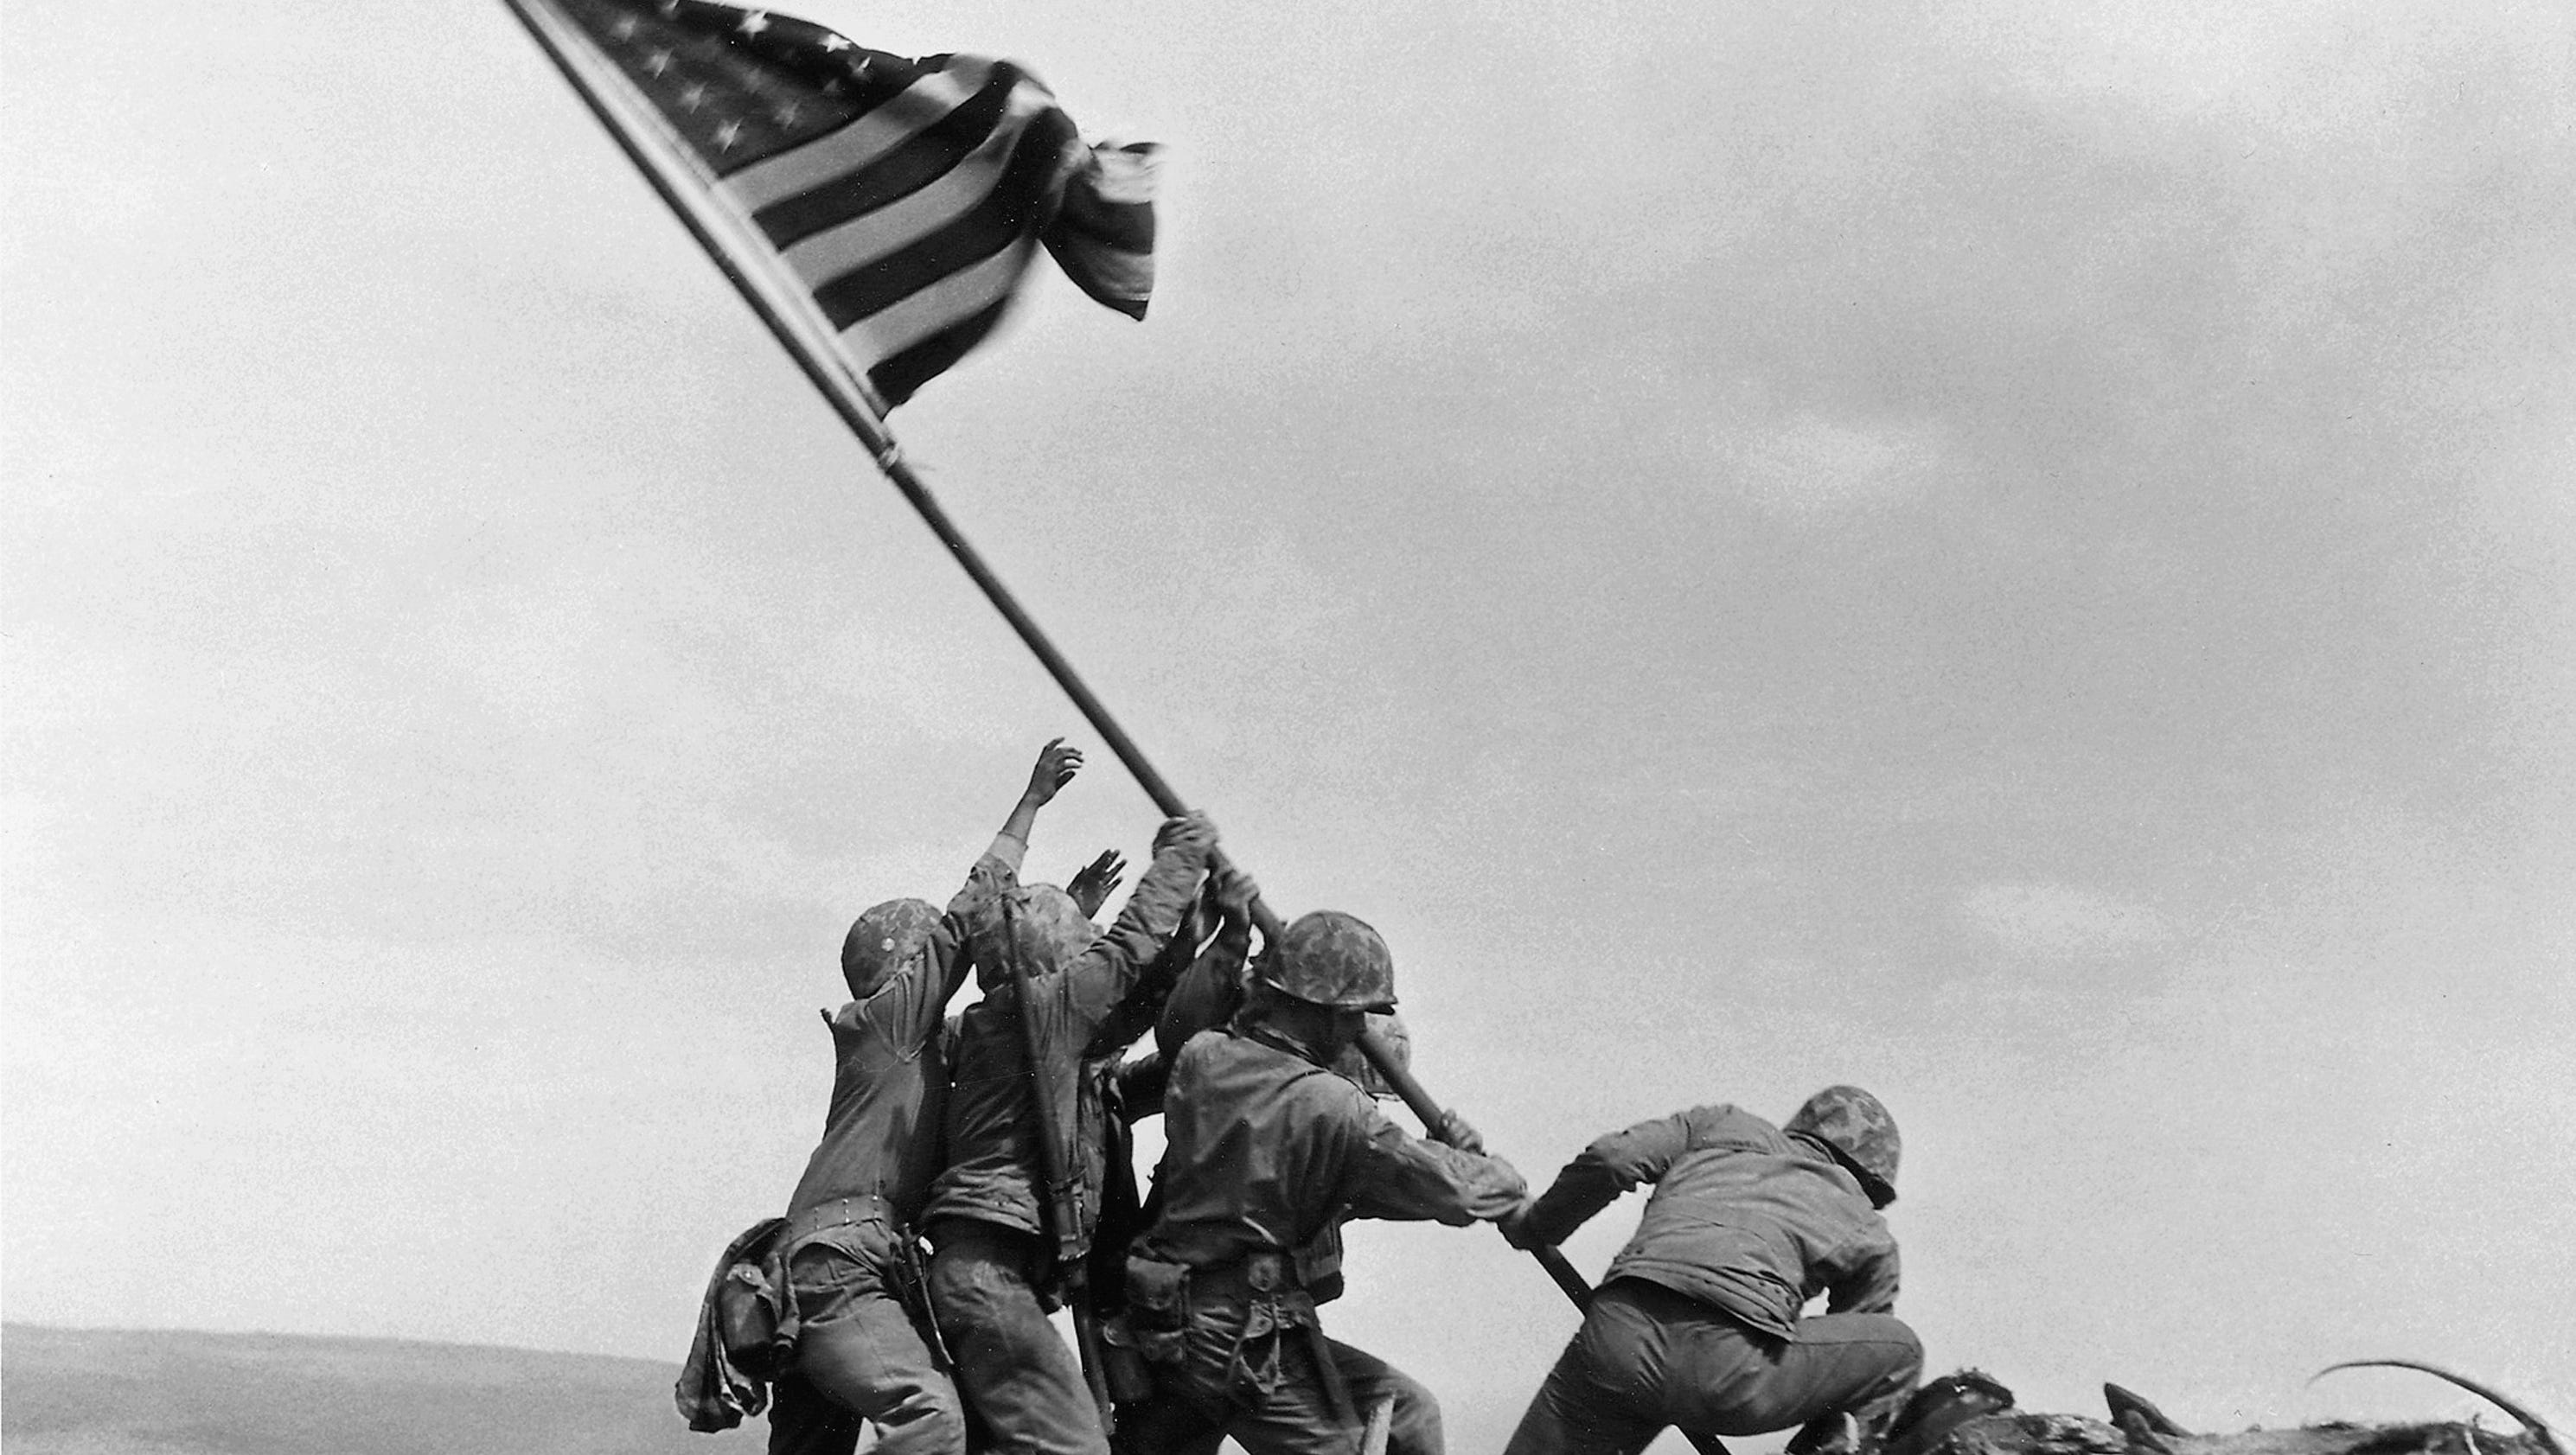 photo of iwo jima Iwo jima, a tiny island 660 miles south of tokyo, was the site of an intense 36-day battle that began feb 19, 1945, between about 70,000 marines and 18,000 japanese soldiers.